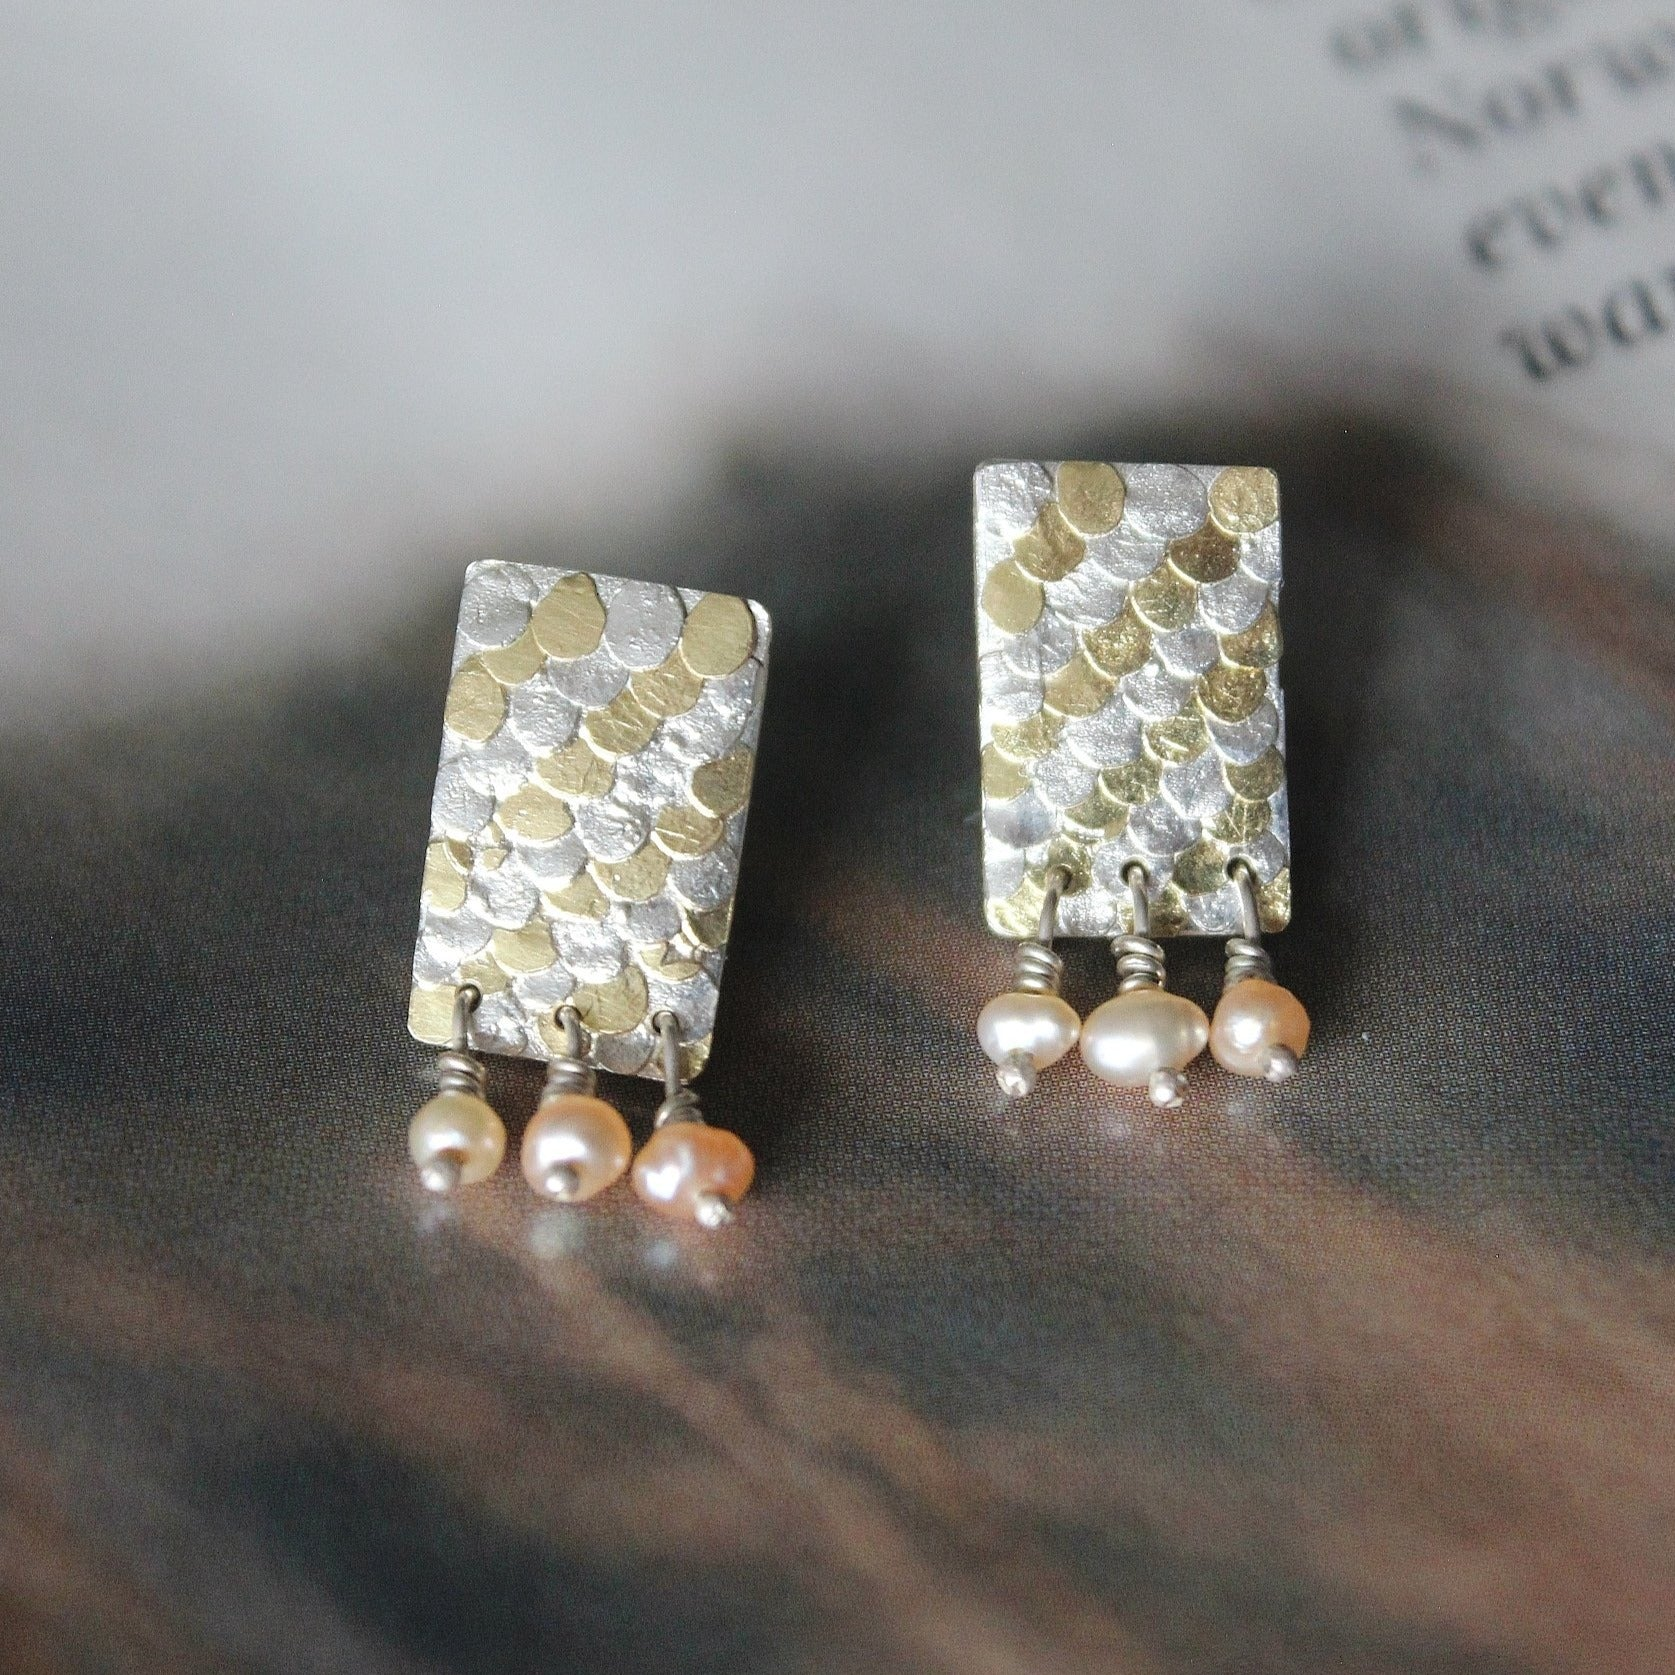 Siren and pearl studs